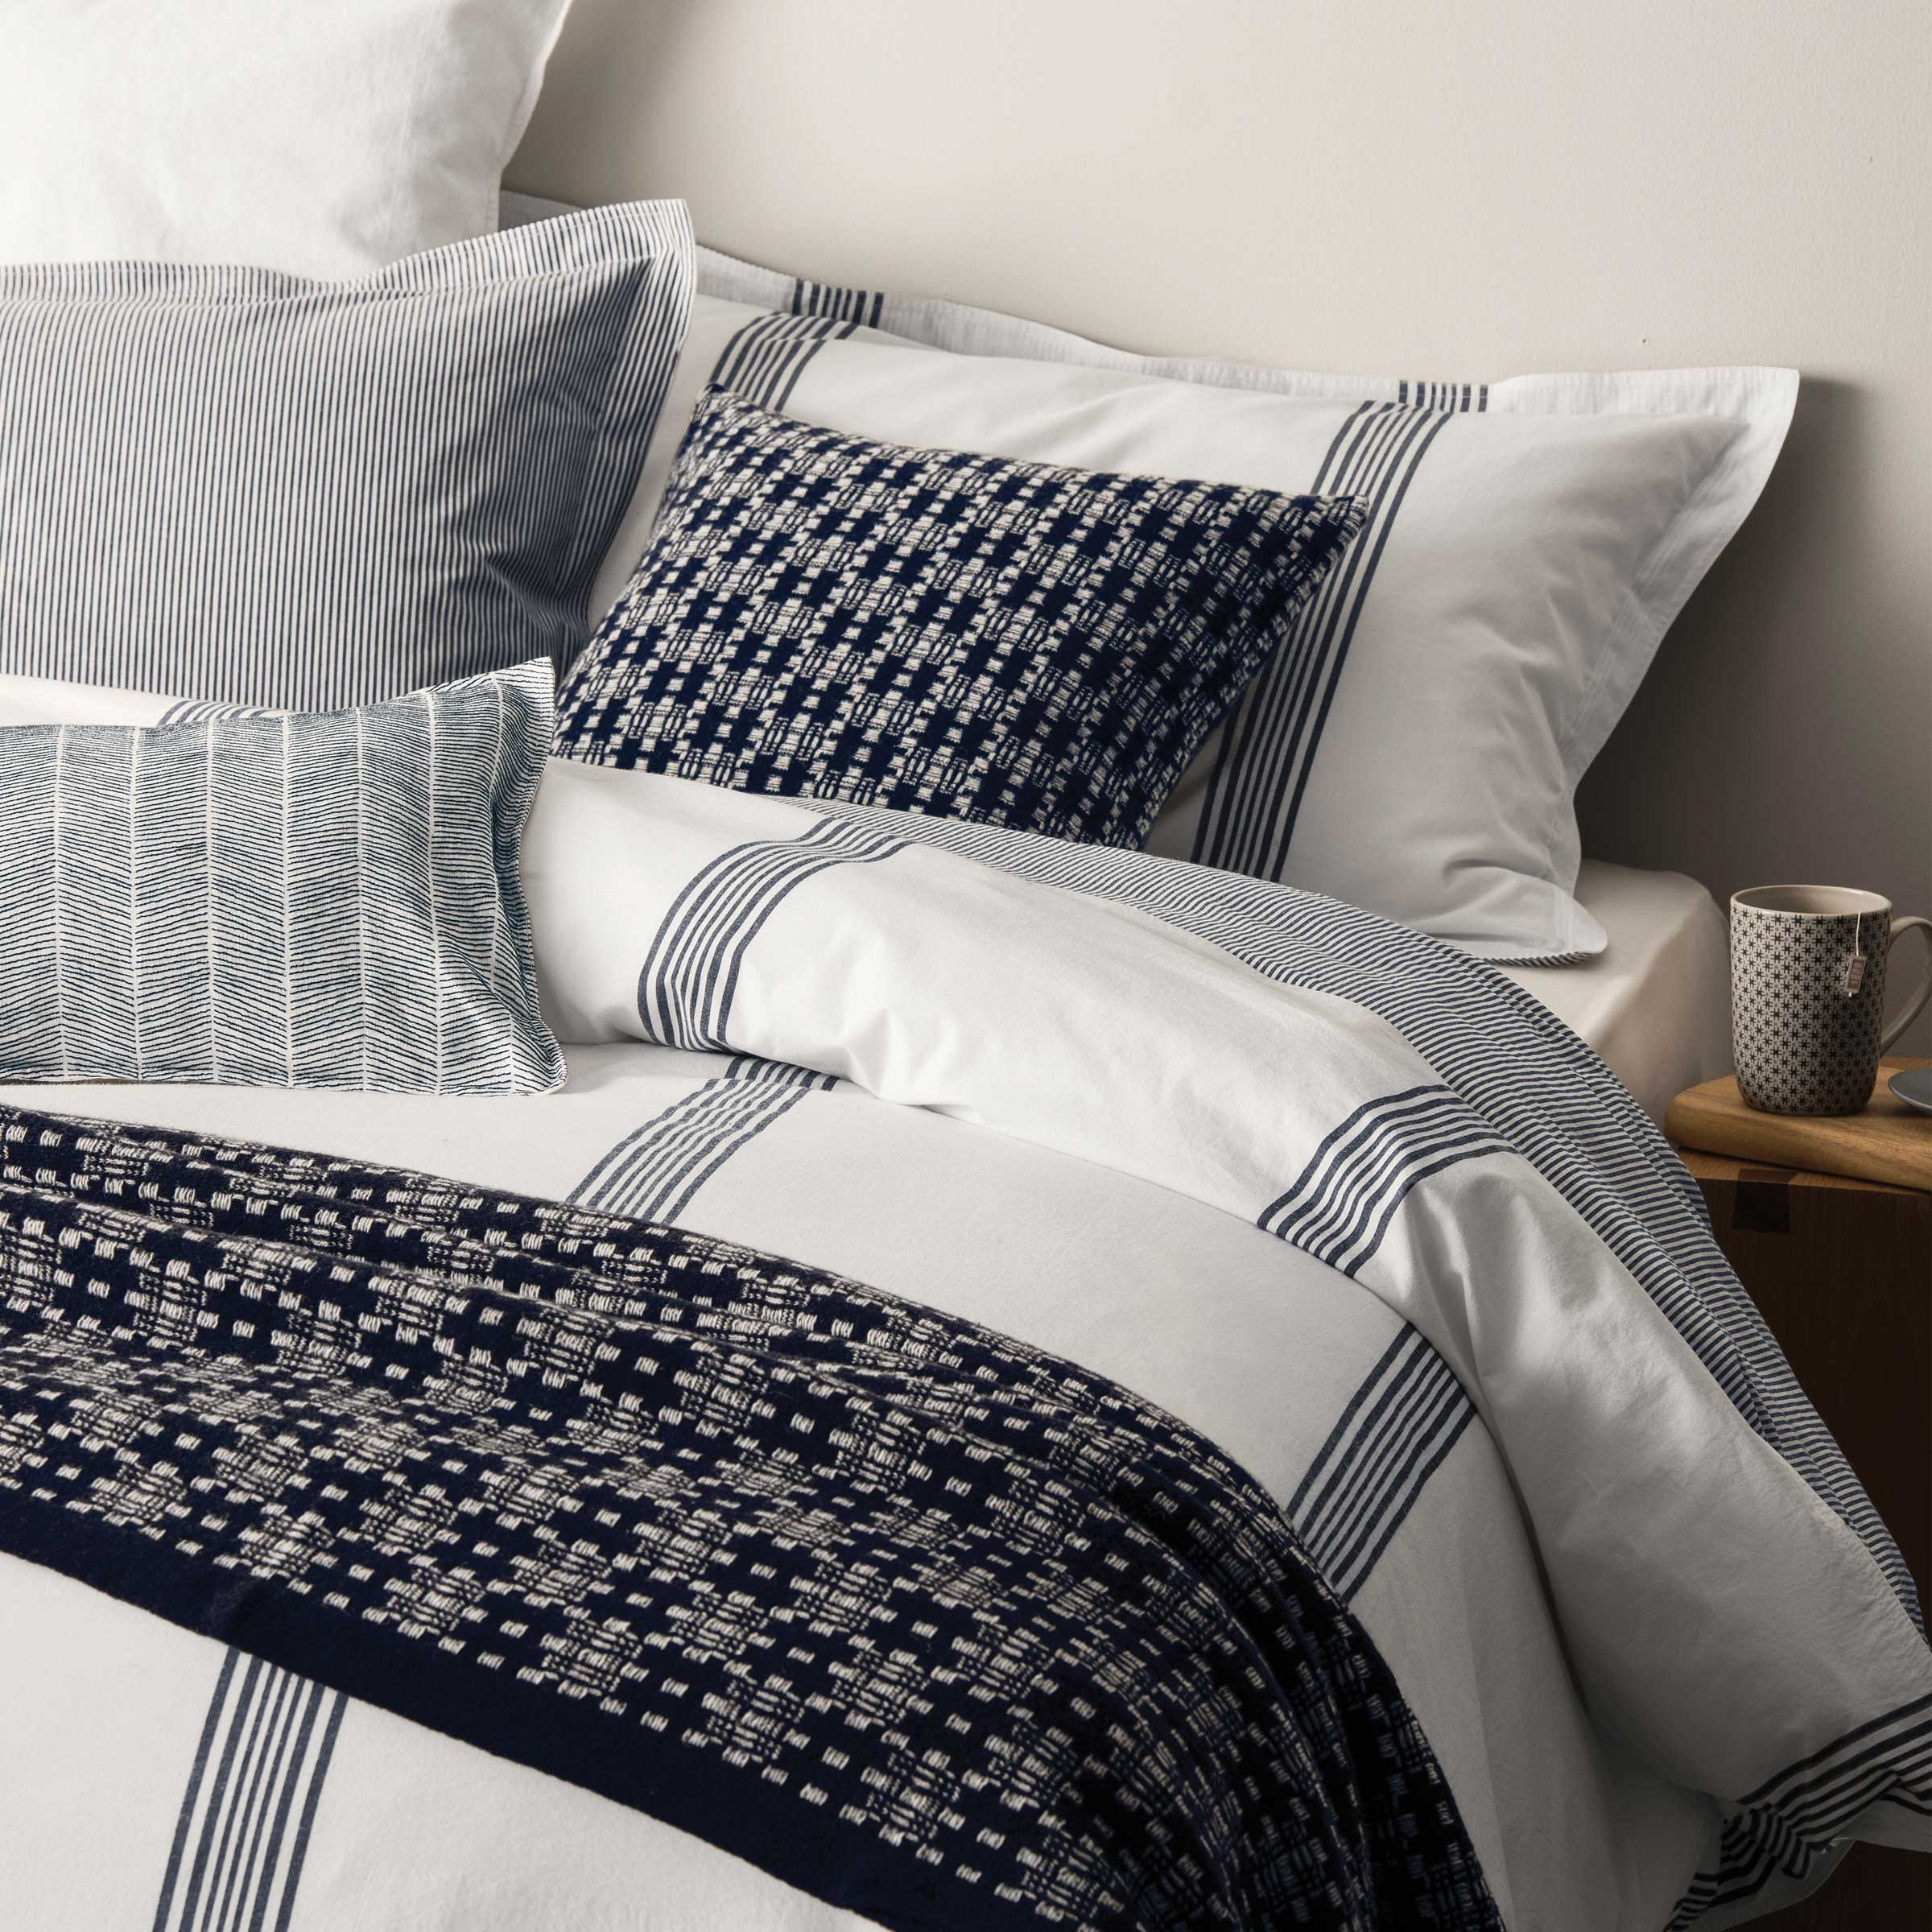 Murmur Broad Stripe Bedding White & Indigo